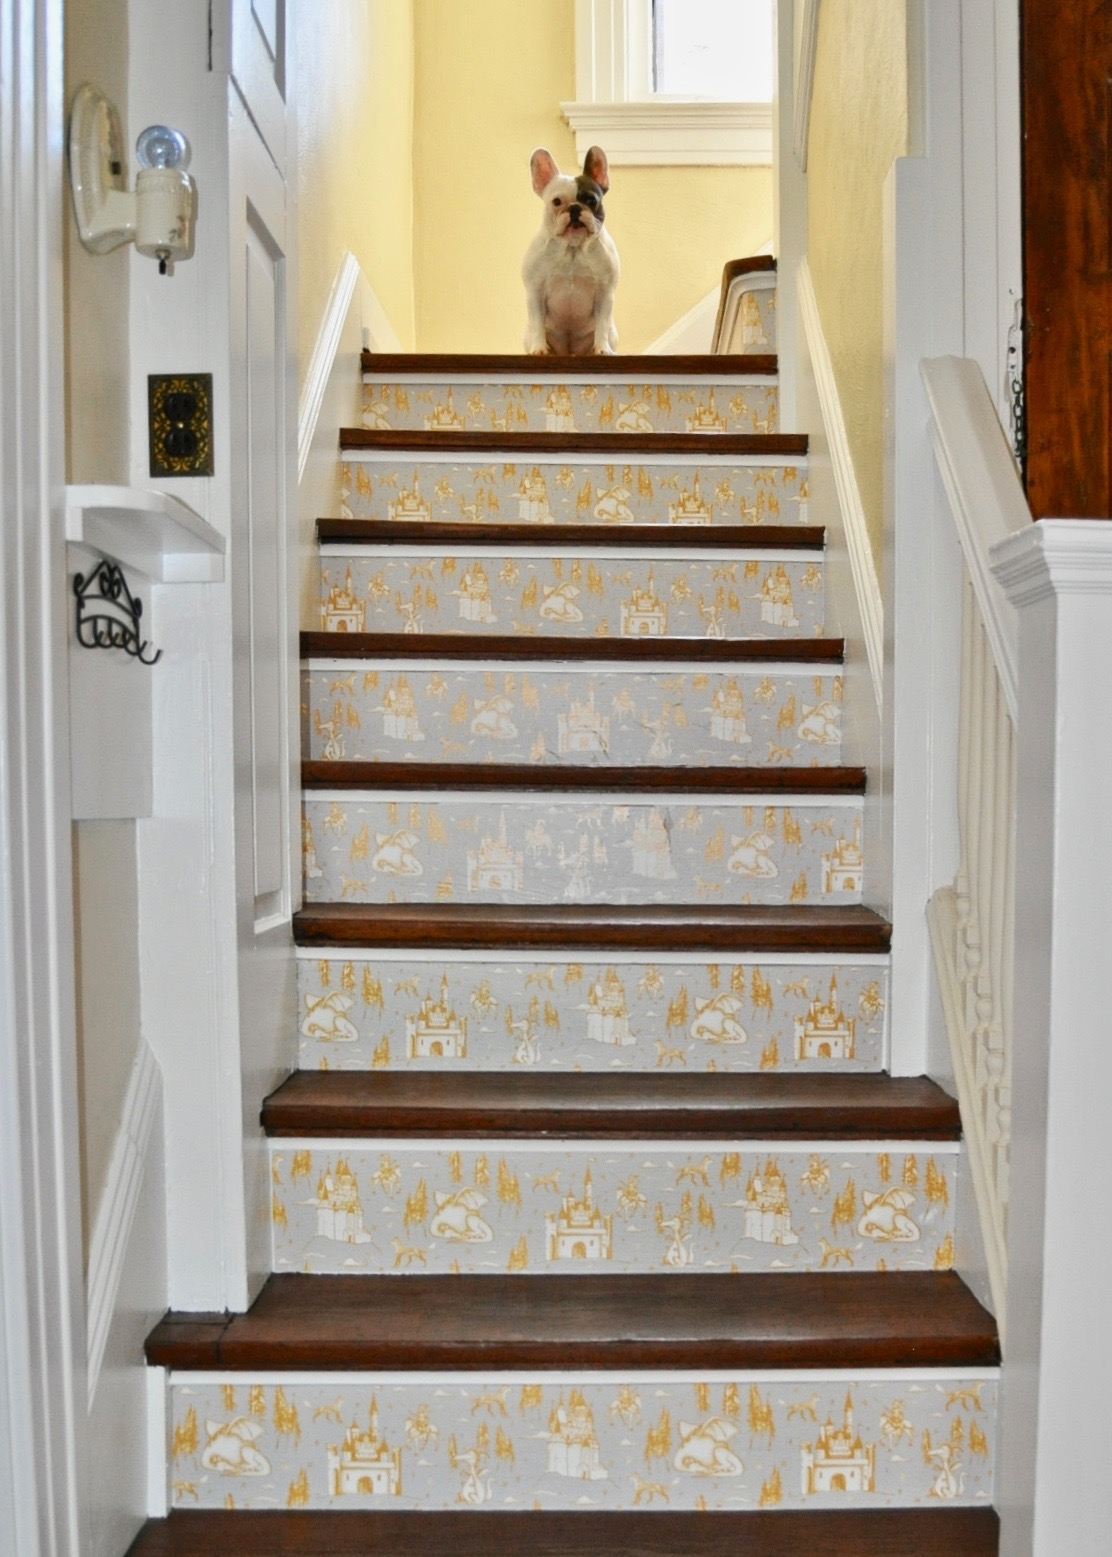 DIY wallpaper installation on your stairs using Tempaper Designs wallpaper.